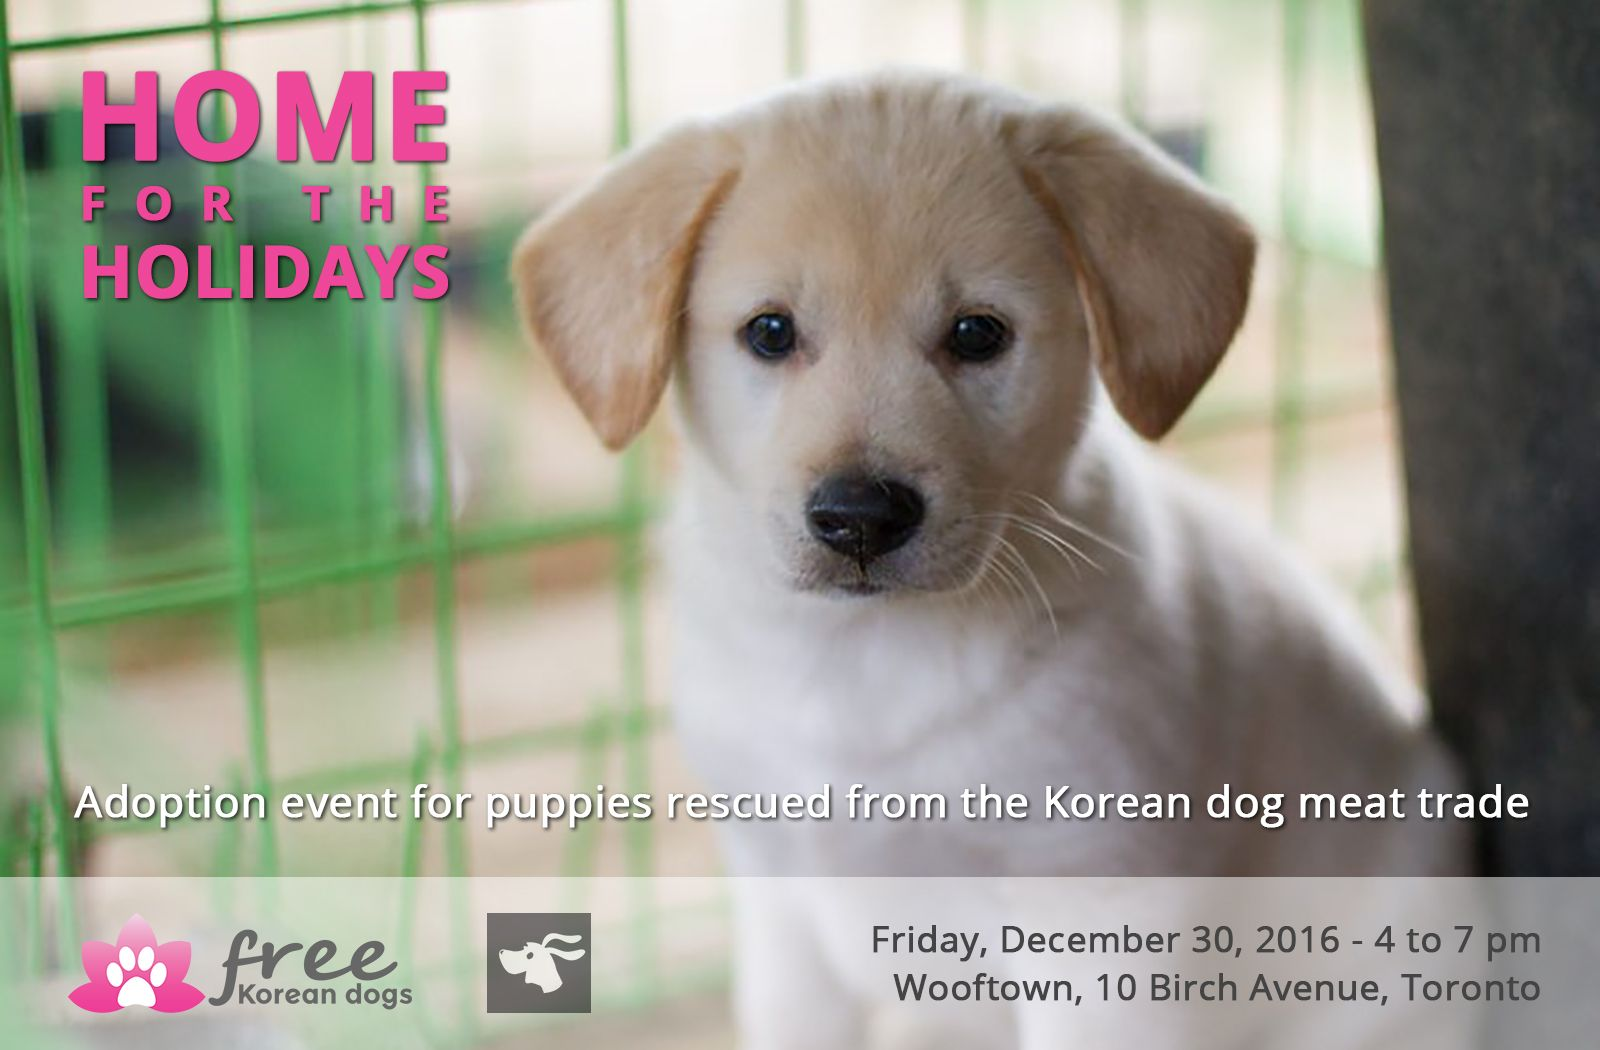 Bring these 6 puppies HomefortheHolidays. Rescued from